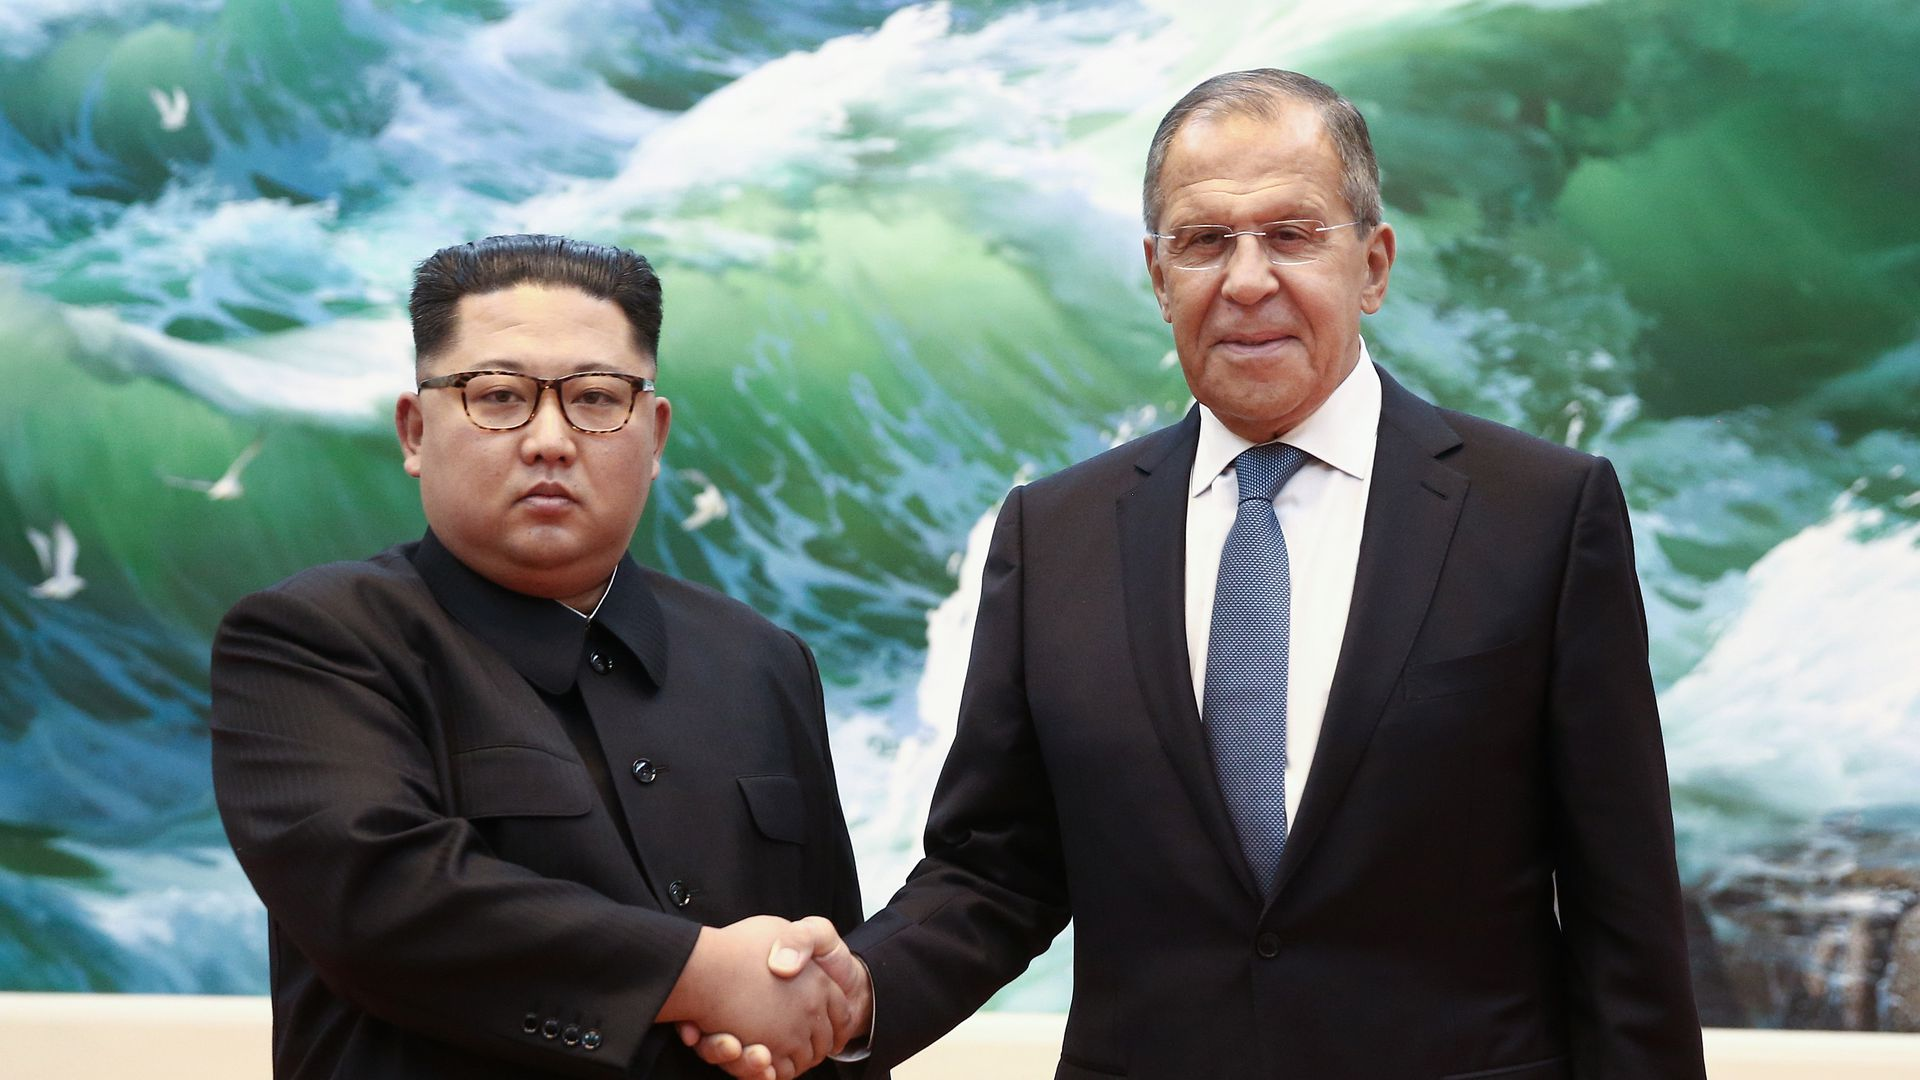 Kim Jong Un and Sergei Lavrov shaking hands